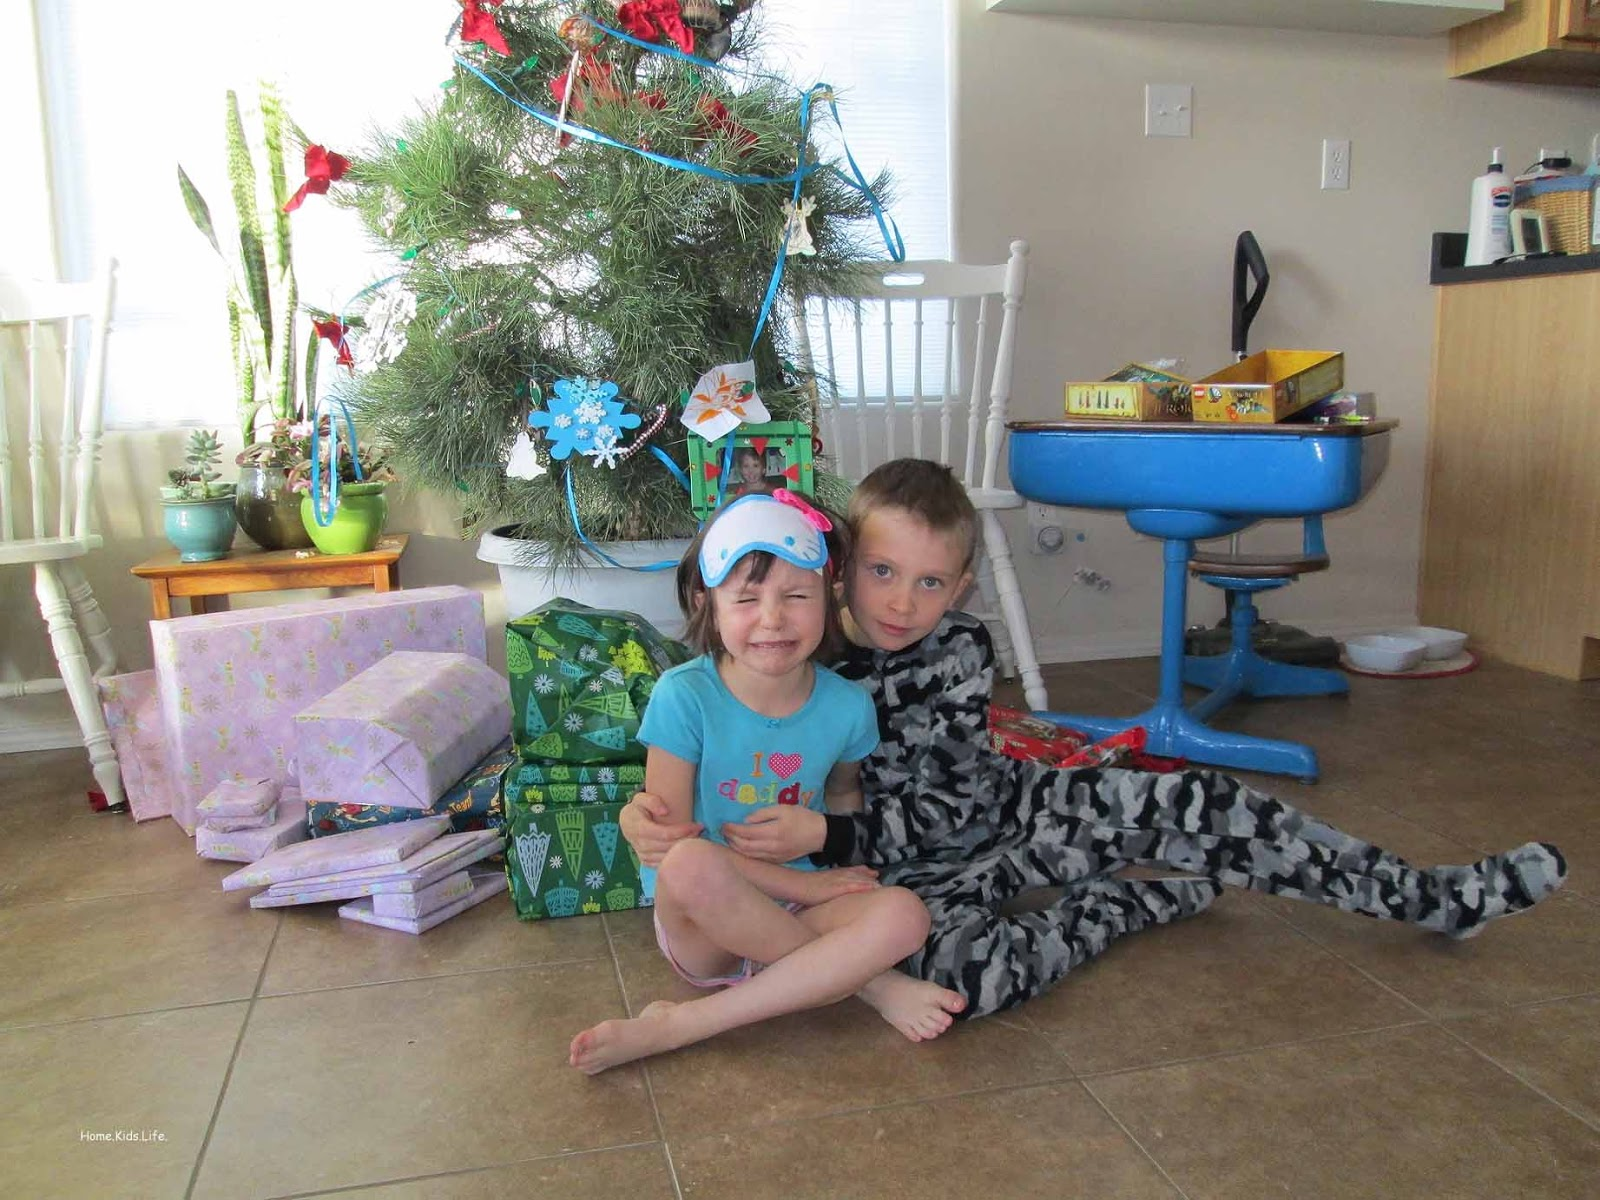 Home. Kids. Life.: Christmas Recap